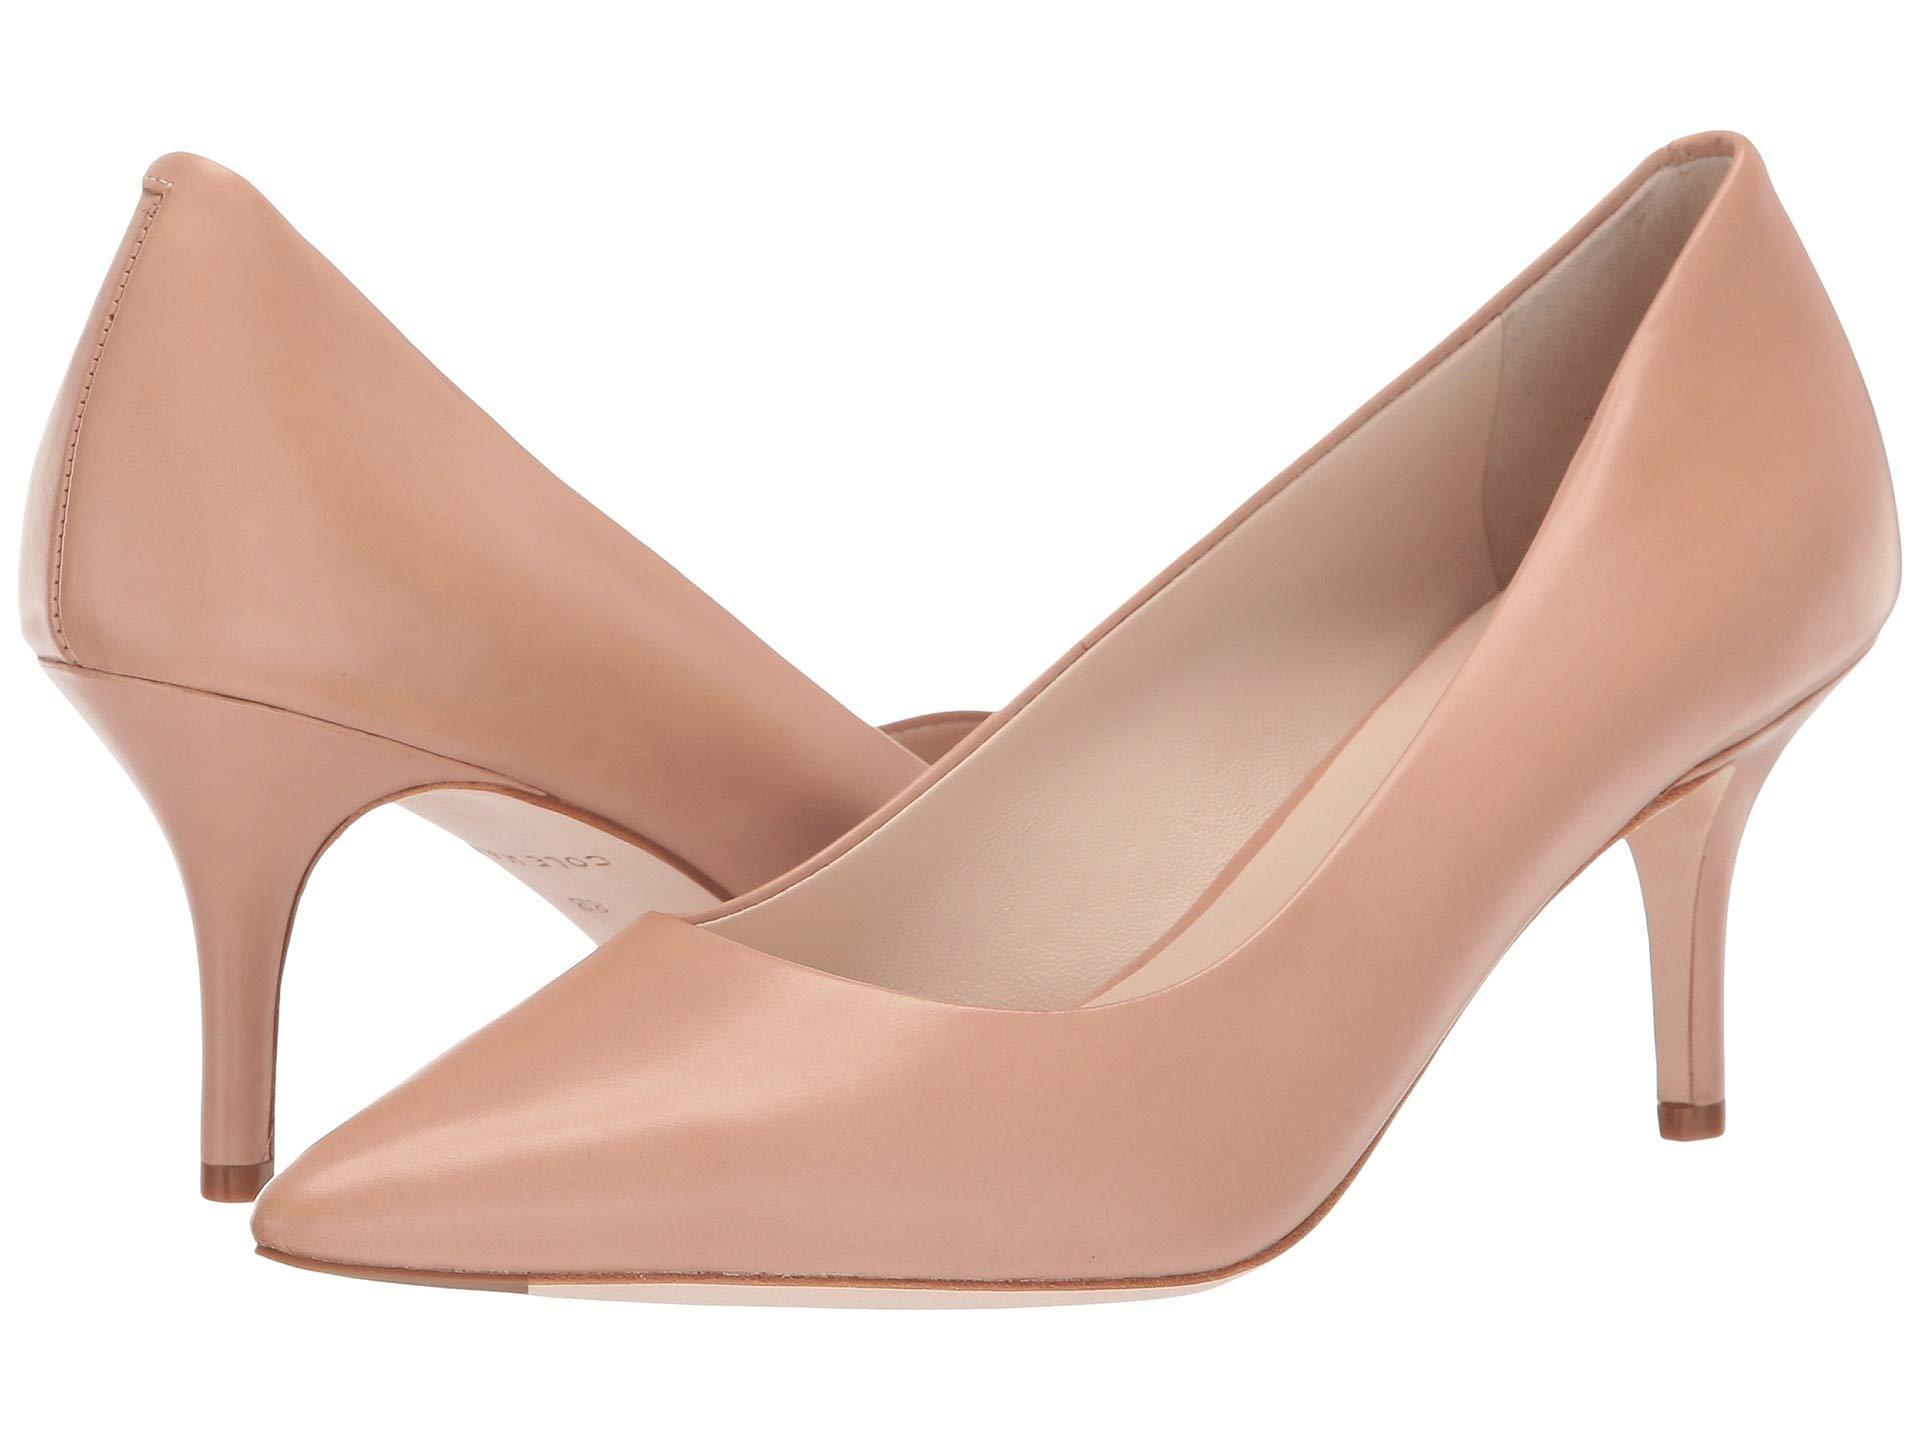 414543fac57 Lyst - Cole Haan Vesta Pump (65mm) (nude Leather) Women s Shoes in ...